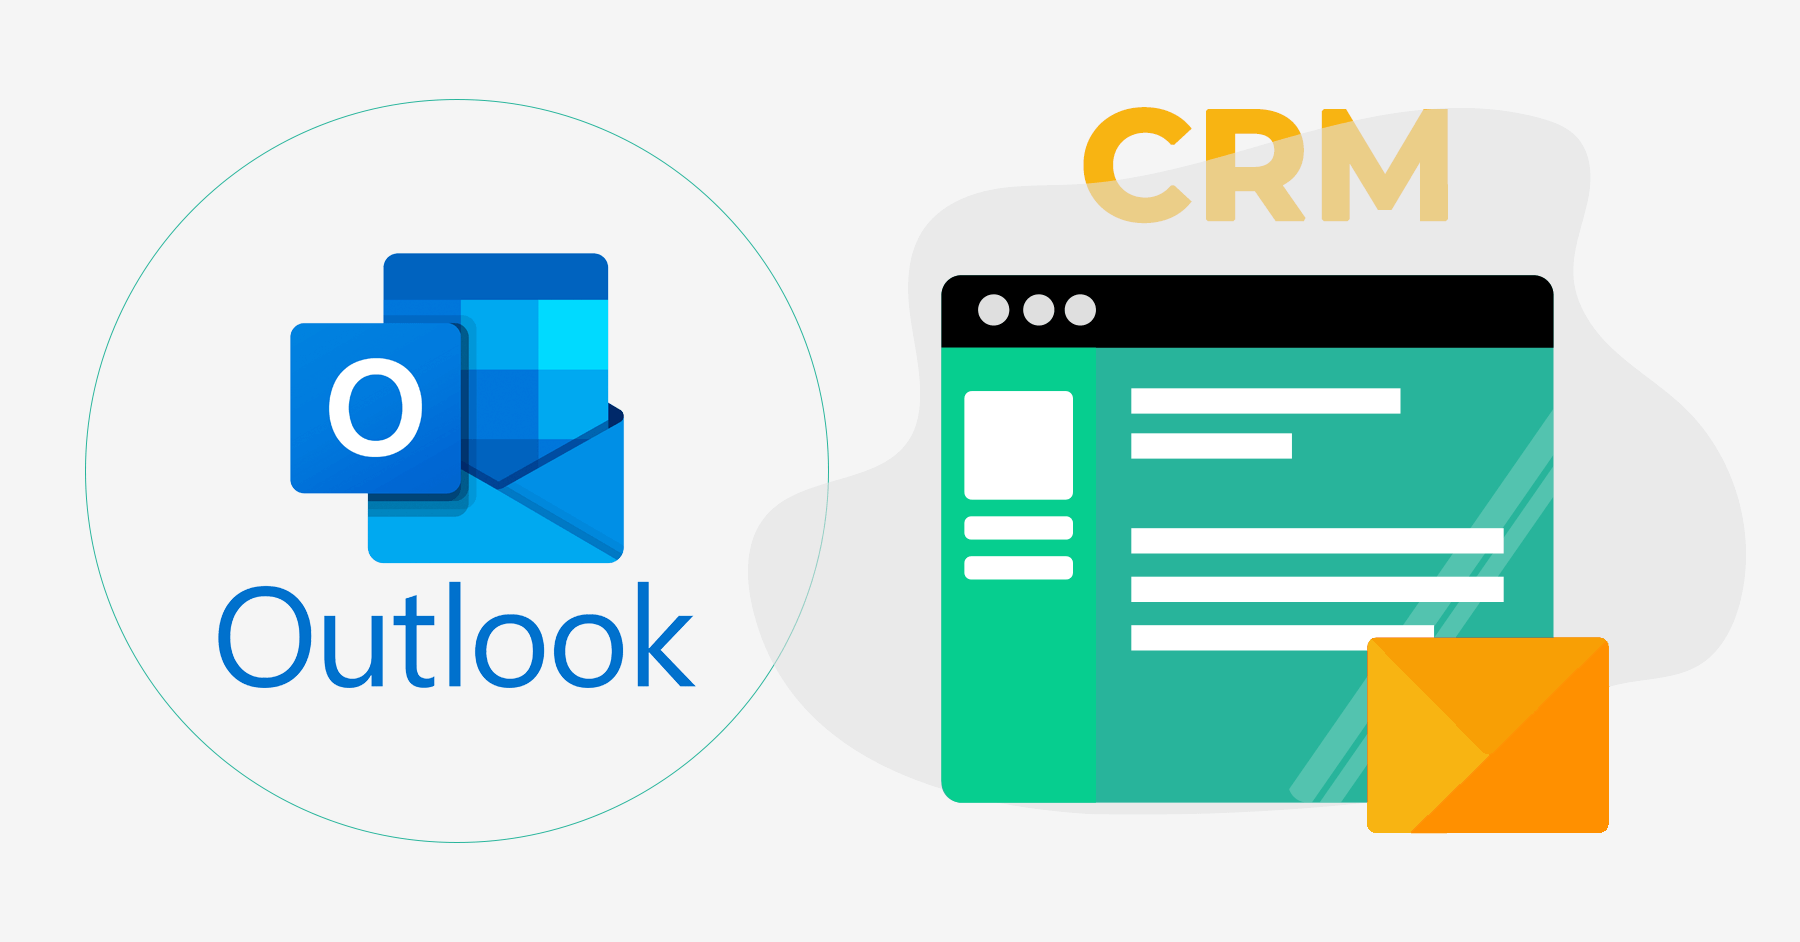 CRM Outlook - integracja